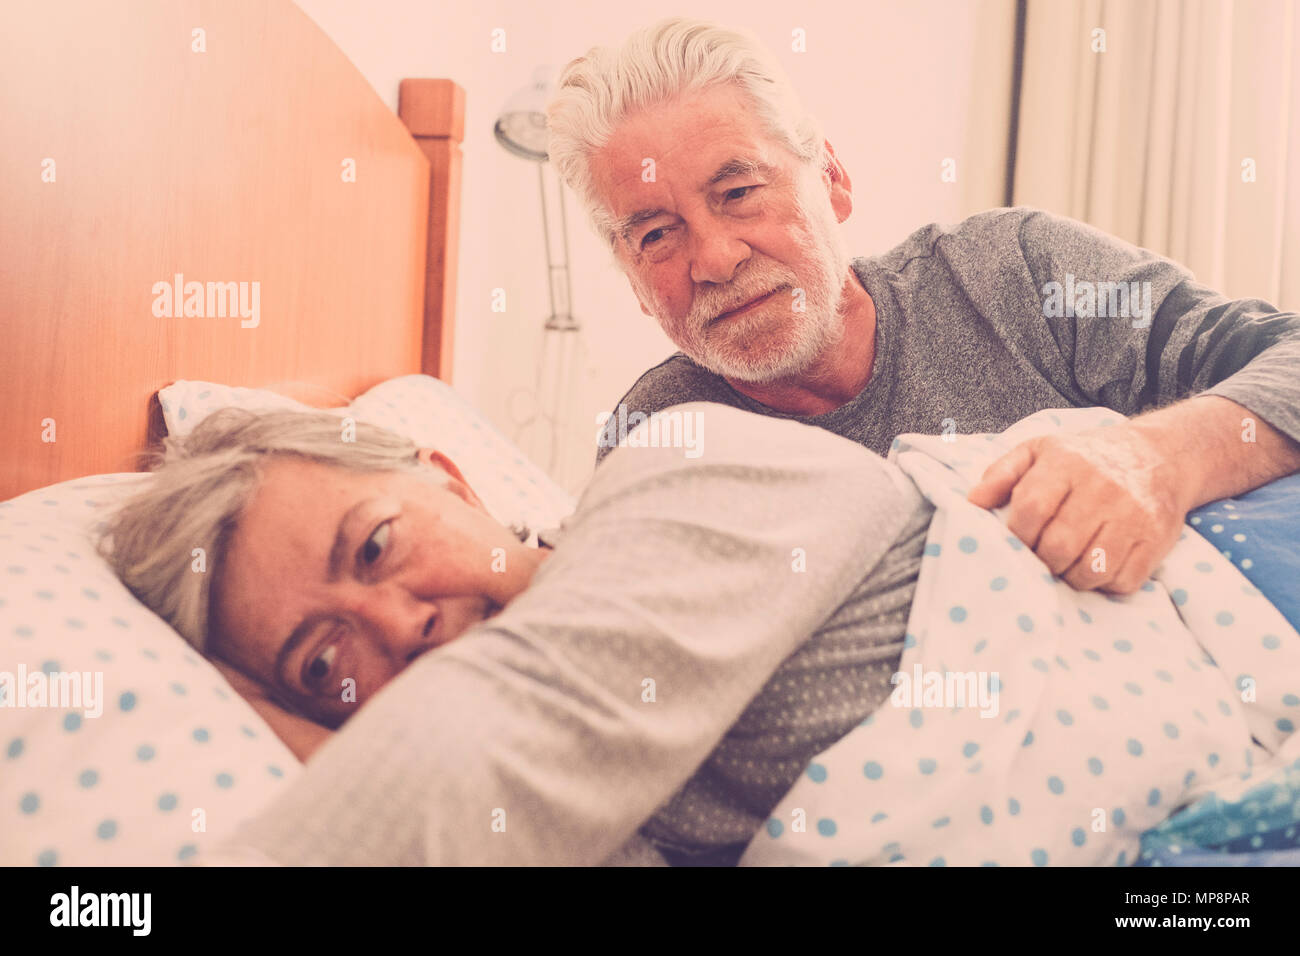 adult mature couple lifestyle waking up after the night. bedroom scene with window natural light. love forever together and nice life concept. white h - Stock Image